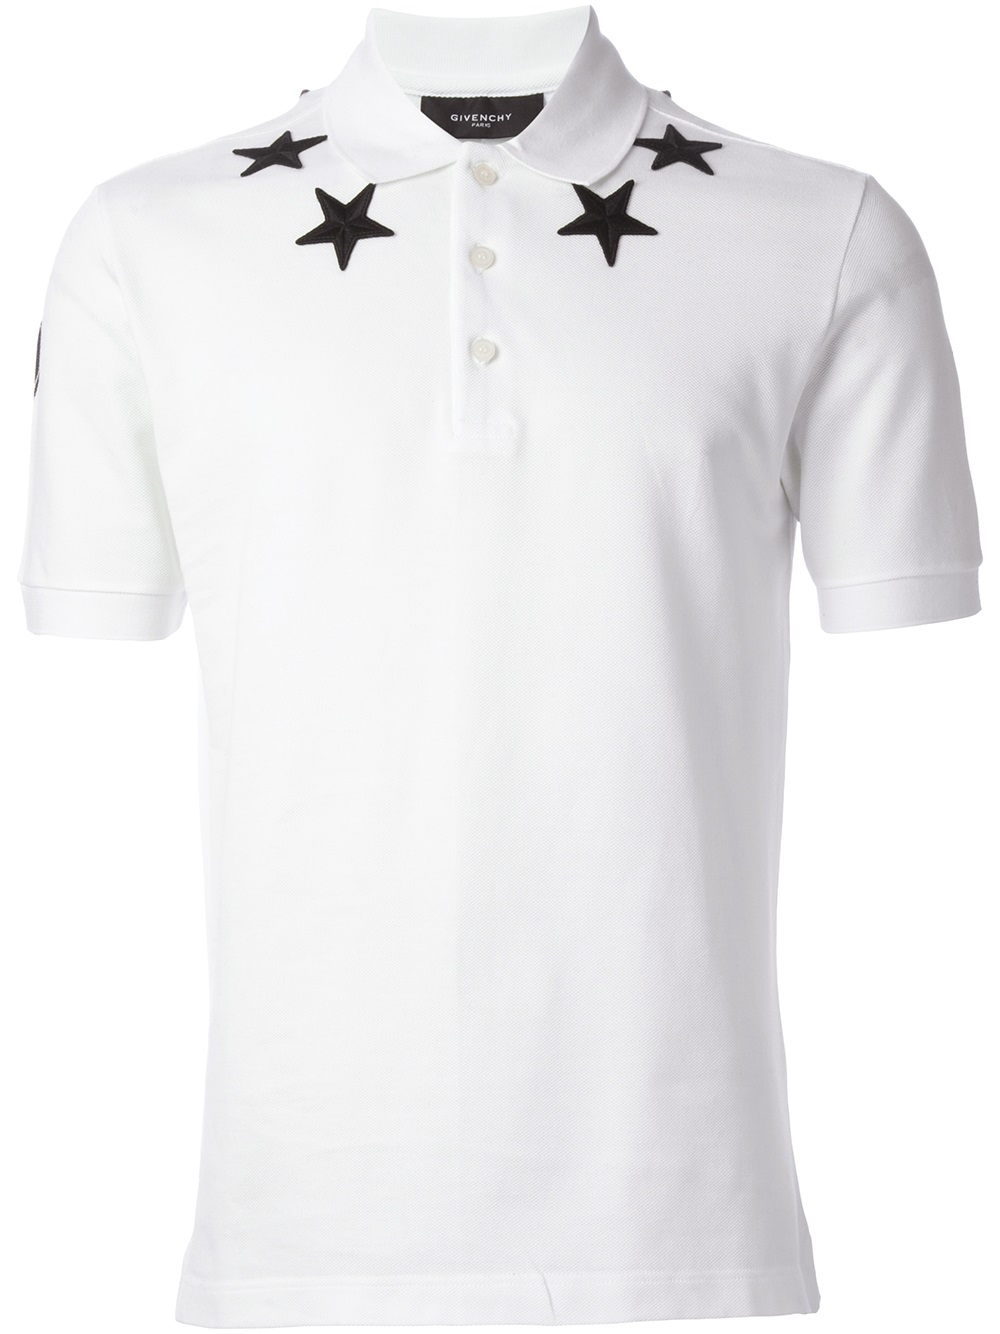 Lyst Givenchy Star Embroidered Polo Shirt In White For Men